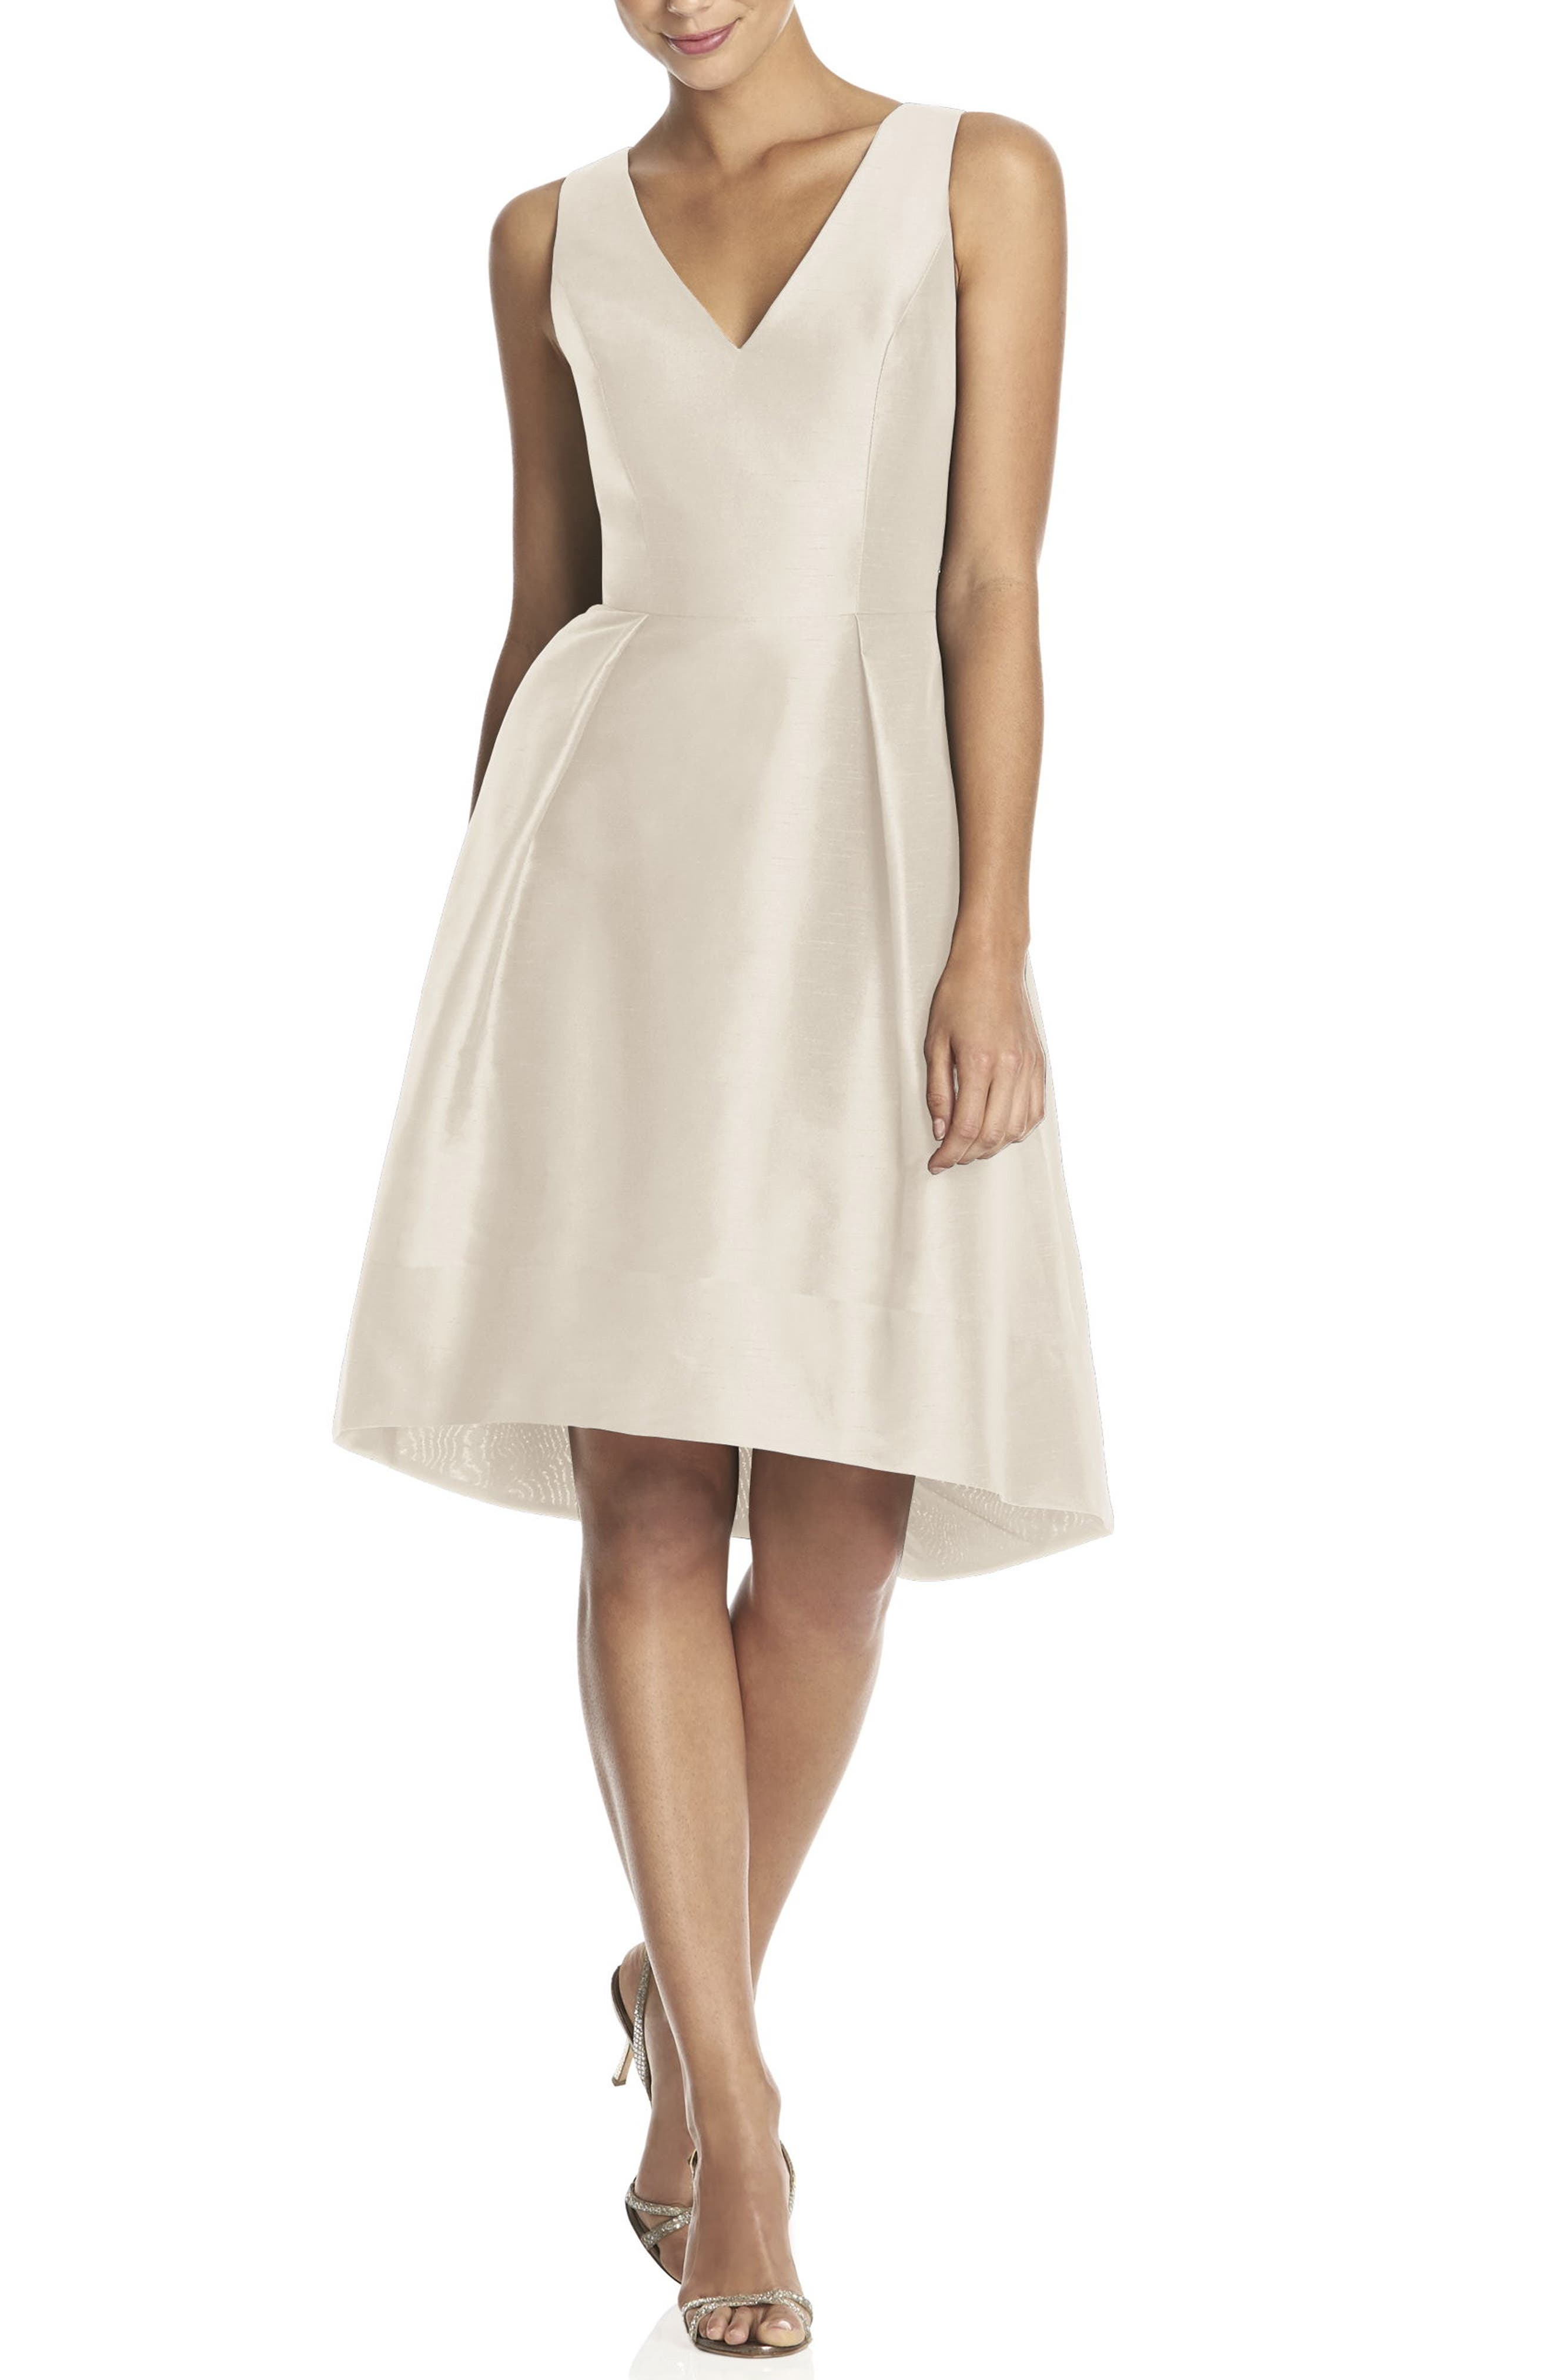 ALFRED SUNG Satin High/Low Fit & Flare Dress, Main, color, CHAMPAGNE